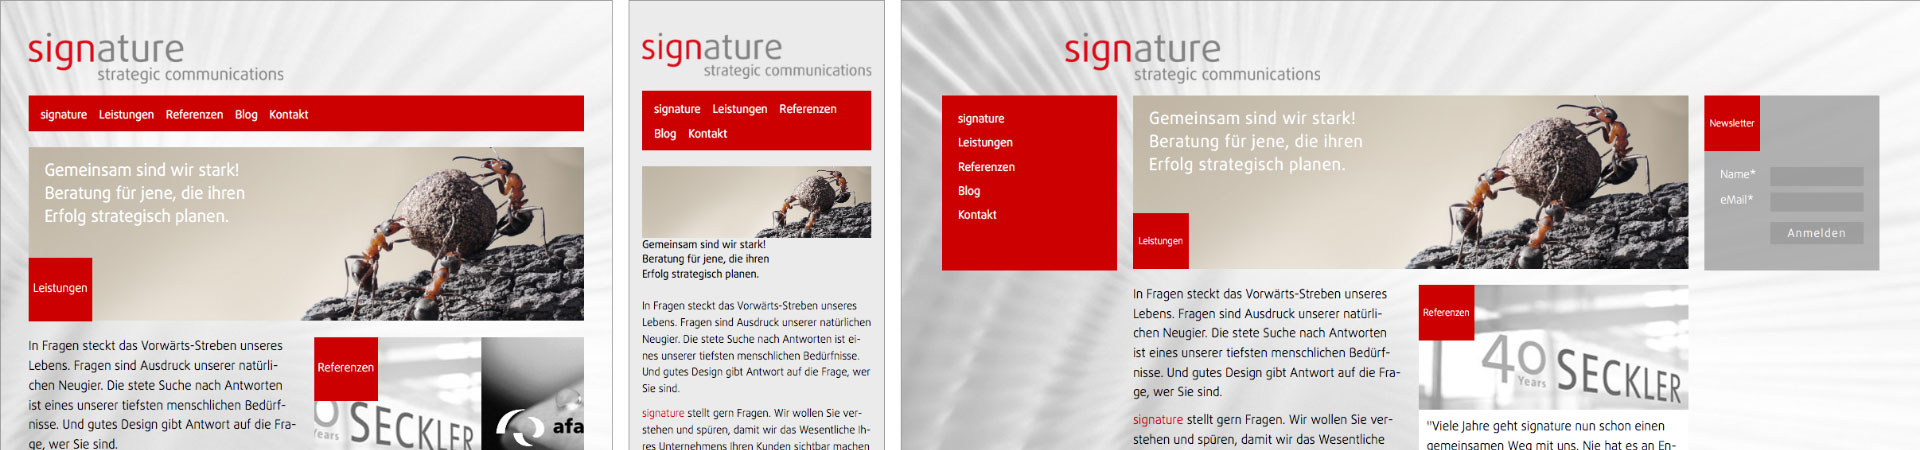 signature design gmbH